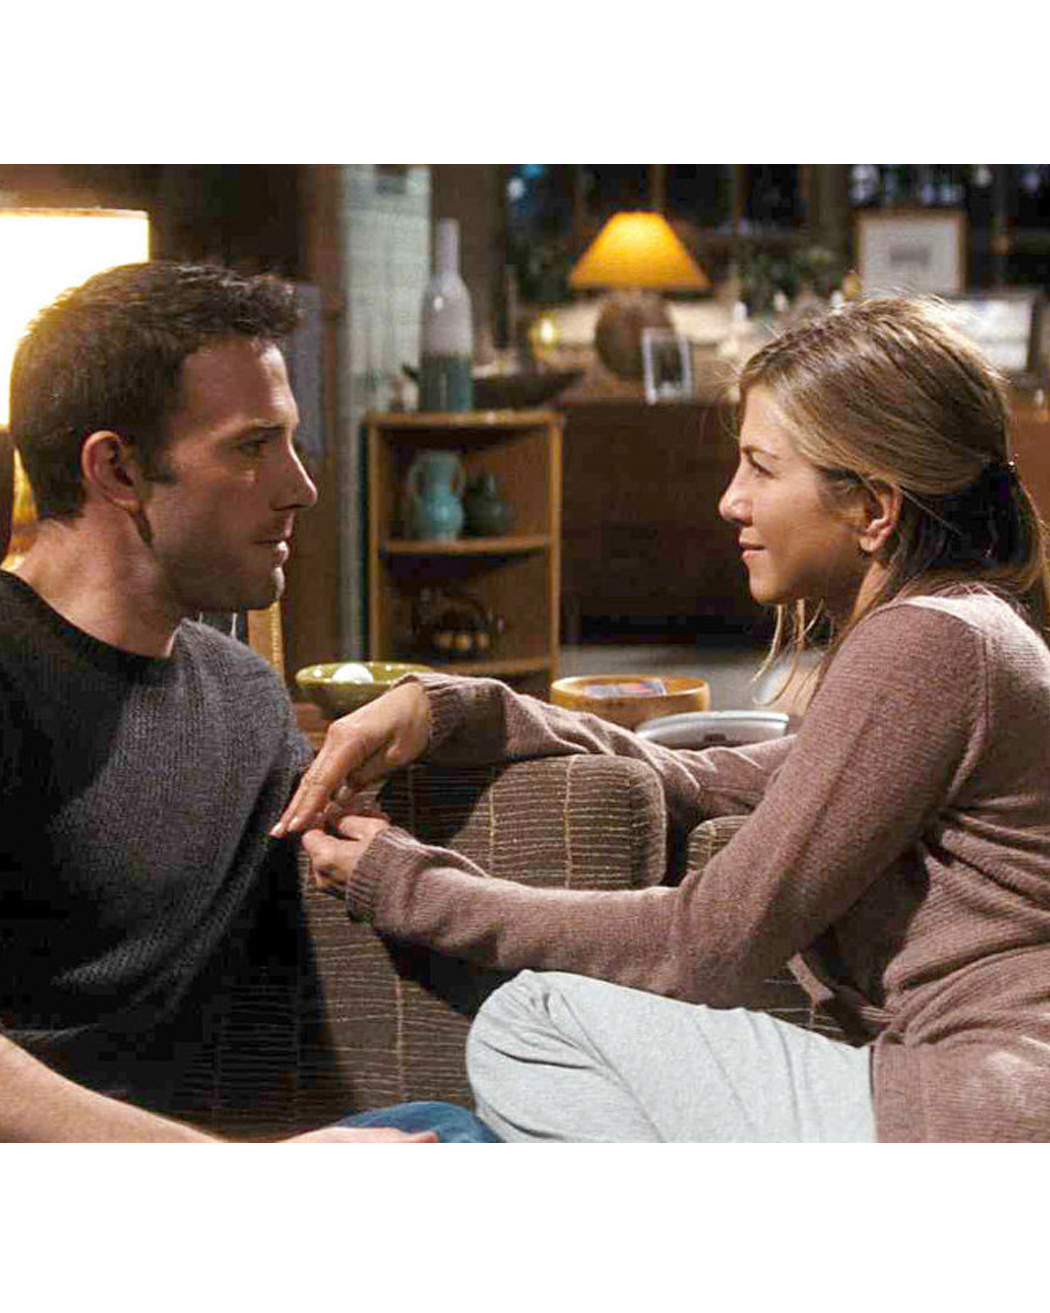 hes-just-not-that-into-you-jennifer-aniston-ben-affleck-1215.jpg